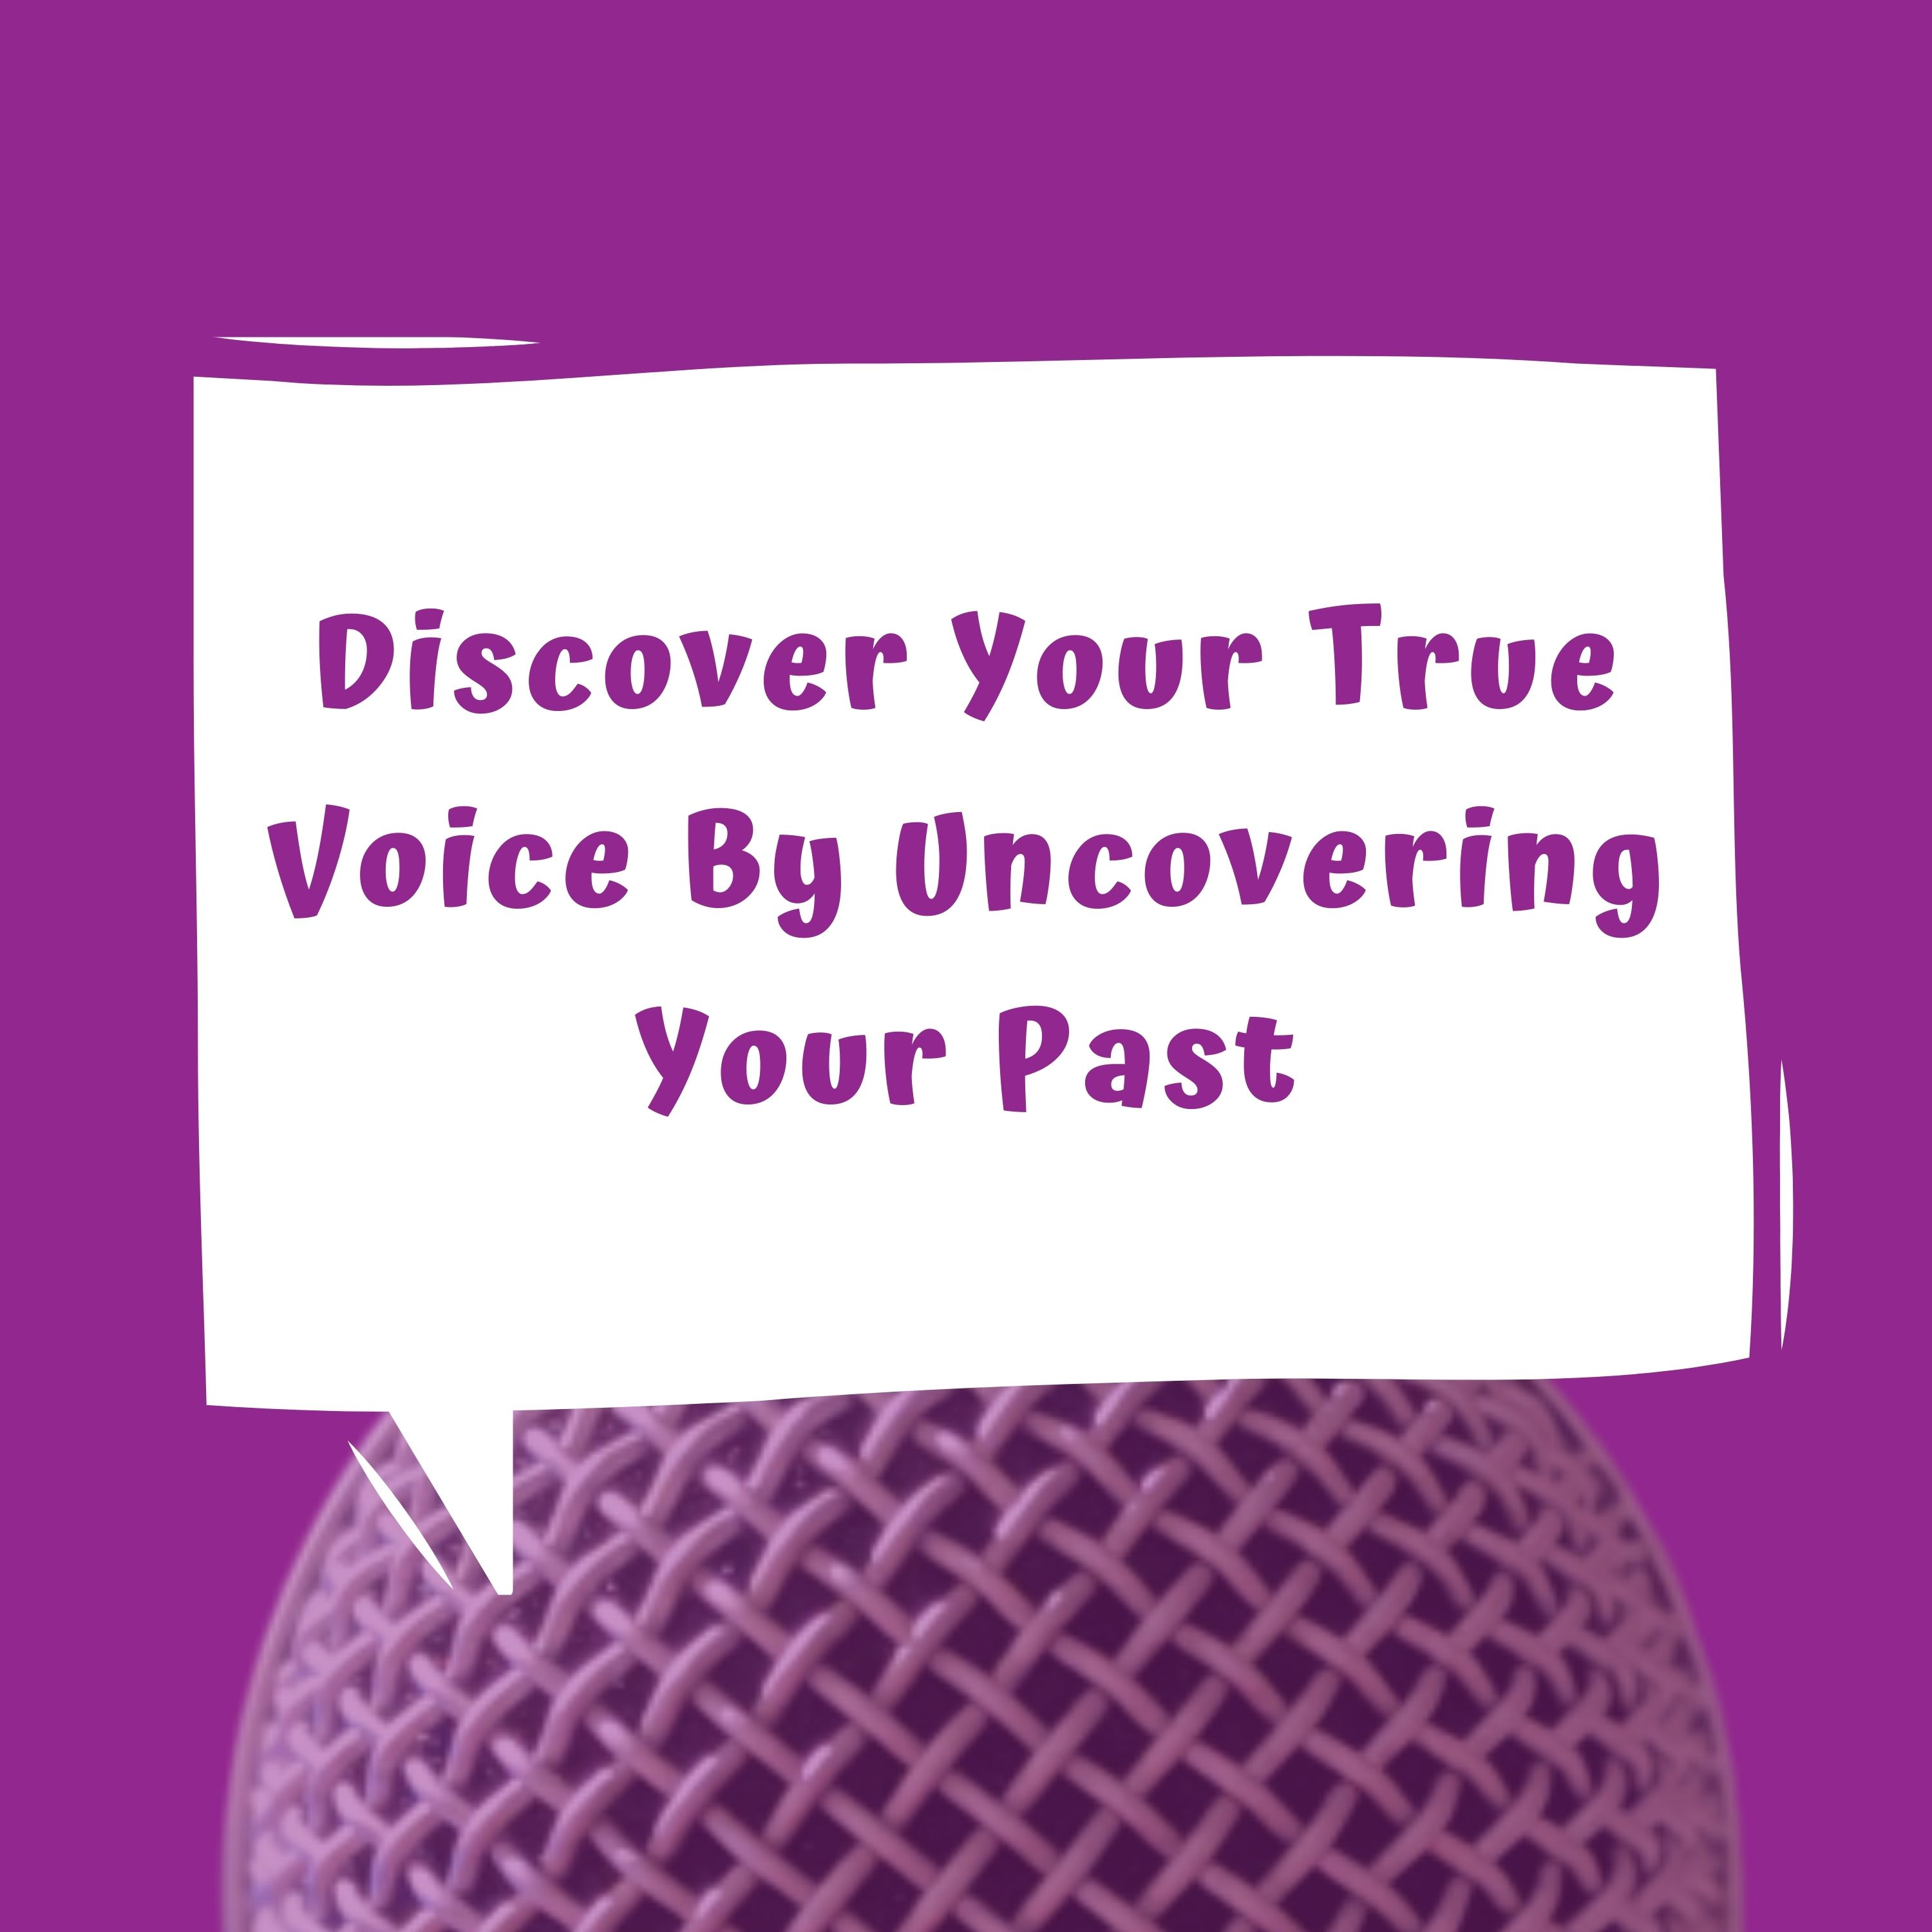 Discover Your True Voice By Uncovering Your Past